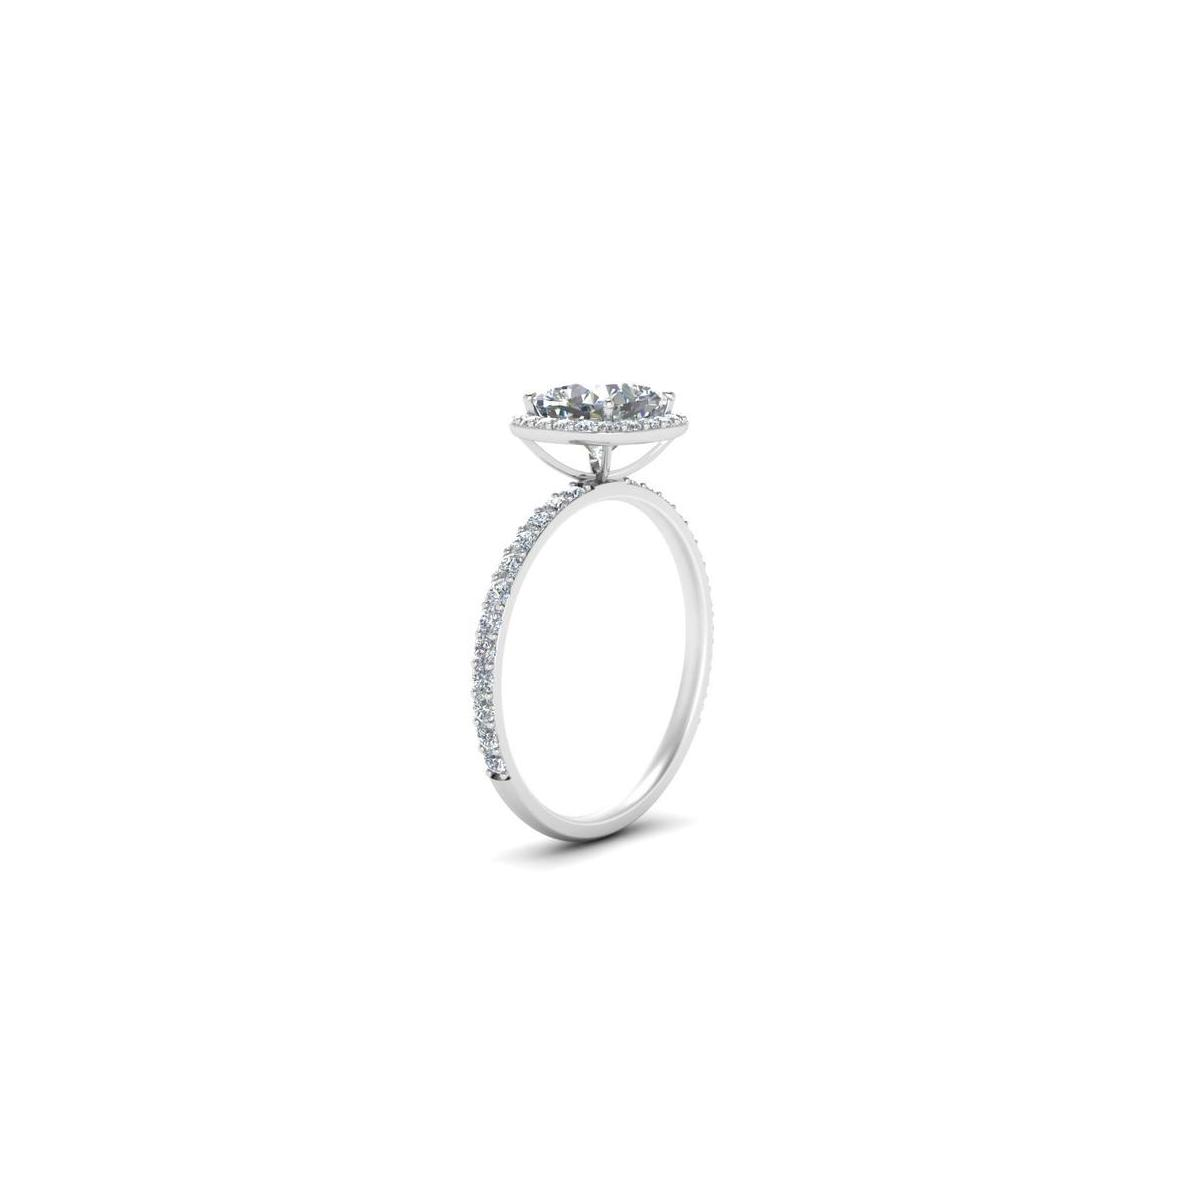 2 Carat Cushion Cut Halo Engagement ring in Pure Silver with 14k White gold plating (size 4-10)